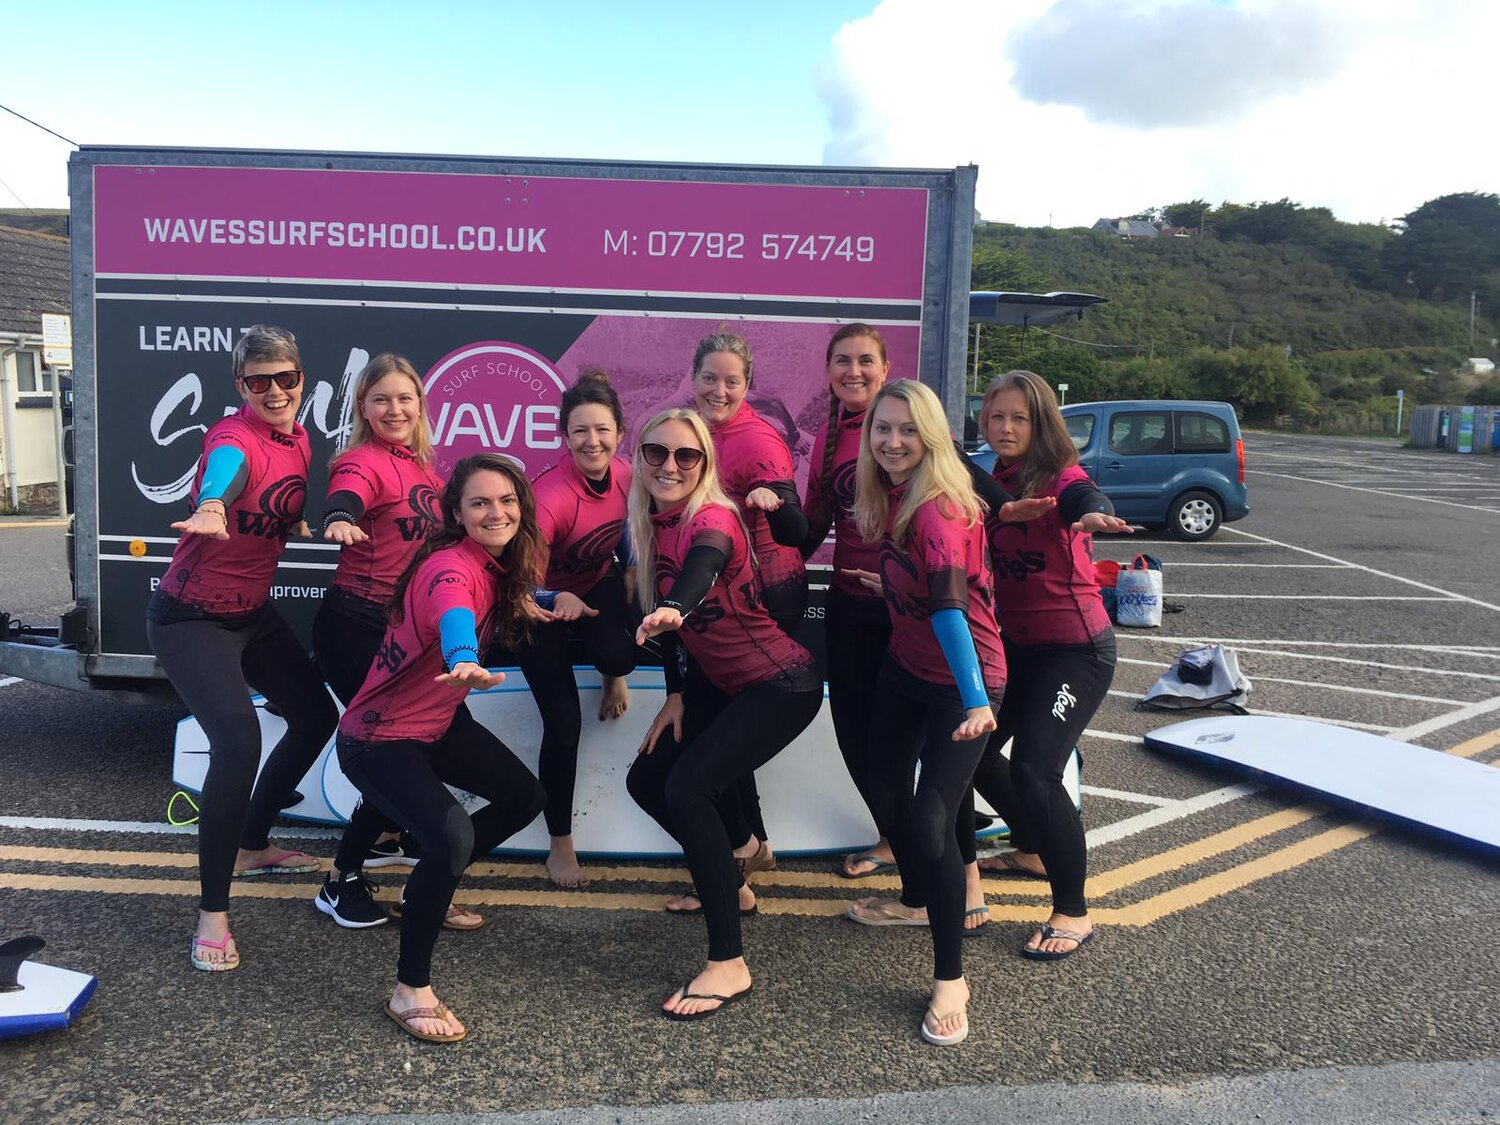 September Surf Stand Up Paddle And Yoga Retreats In Cornwall What Our Guests Say Ride On Retreats